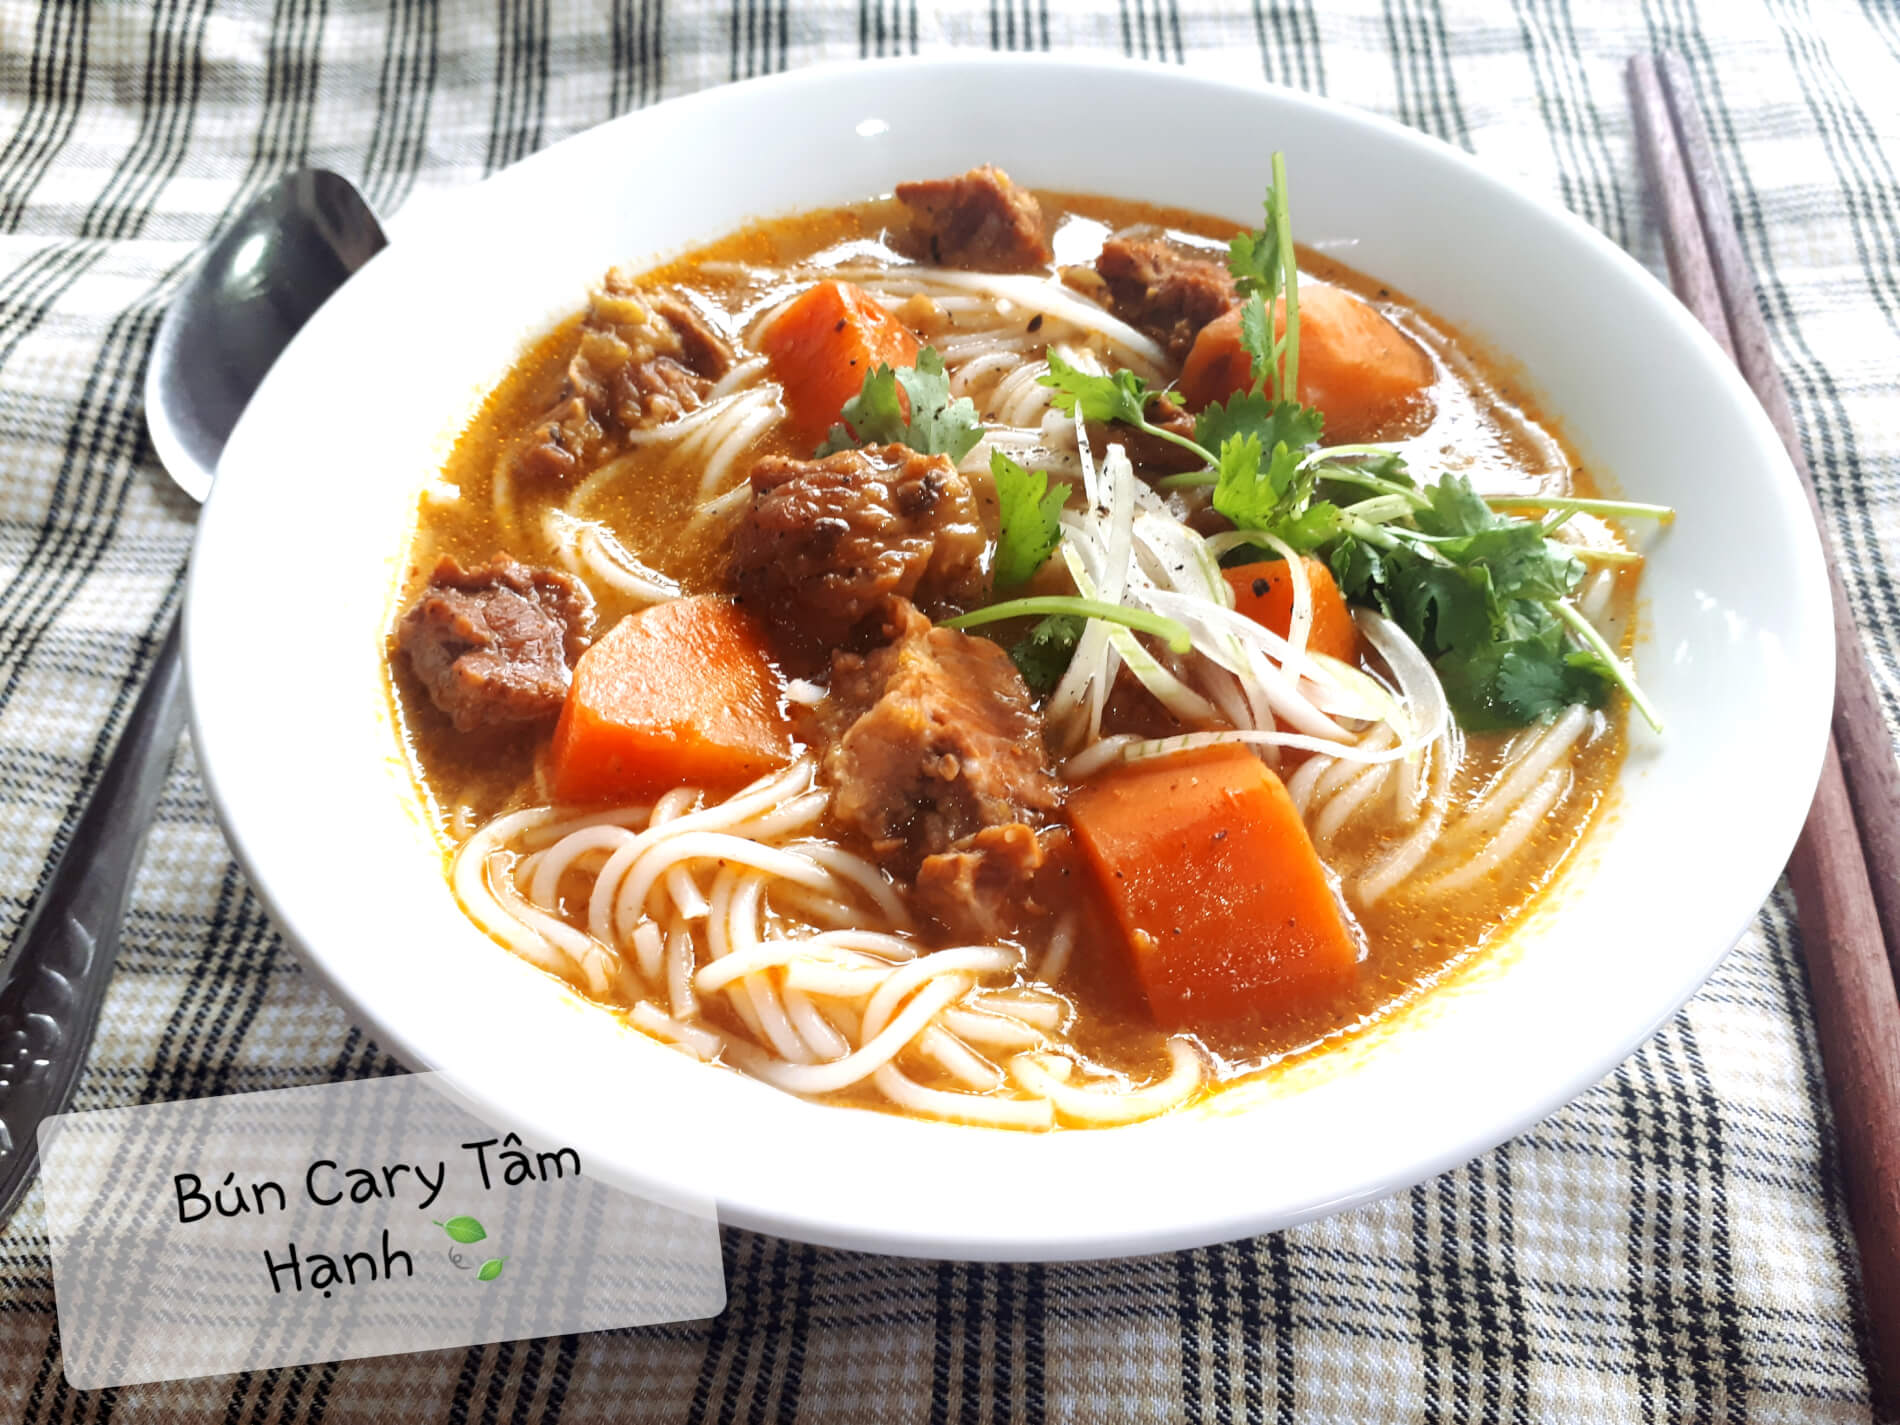 Bun Cary offers food delivery in Hoi An